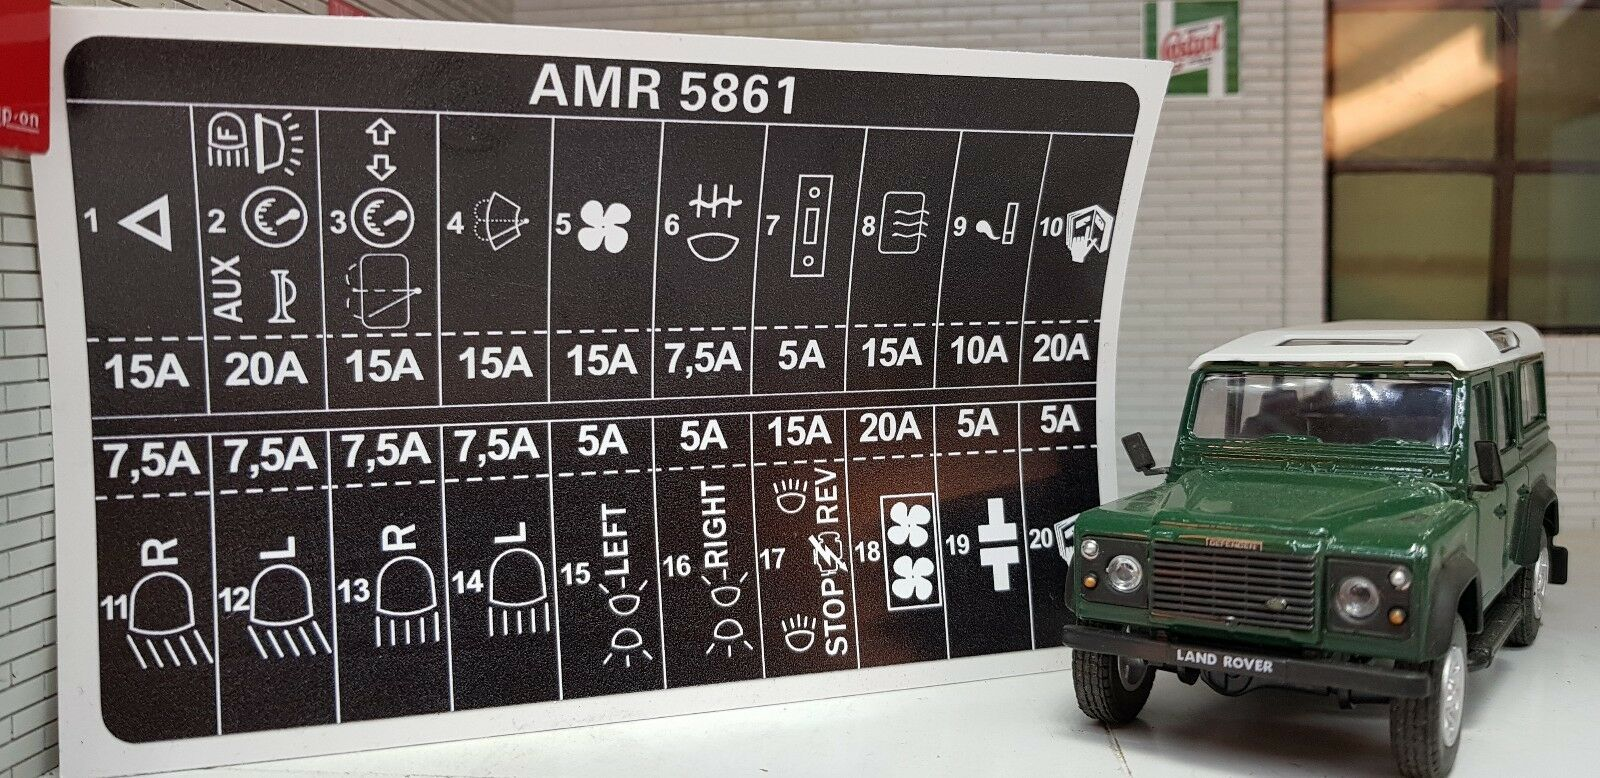 Land Rover Defender Puma Fuse Box Location Car Layout Cover Wiring Diagram Electricity